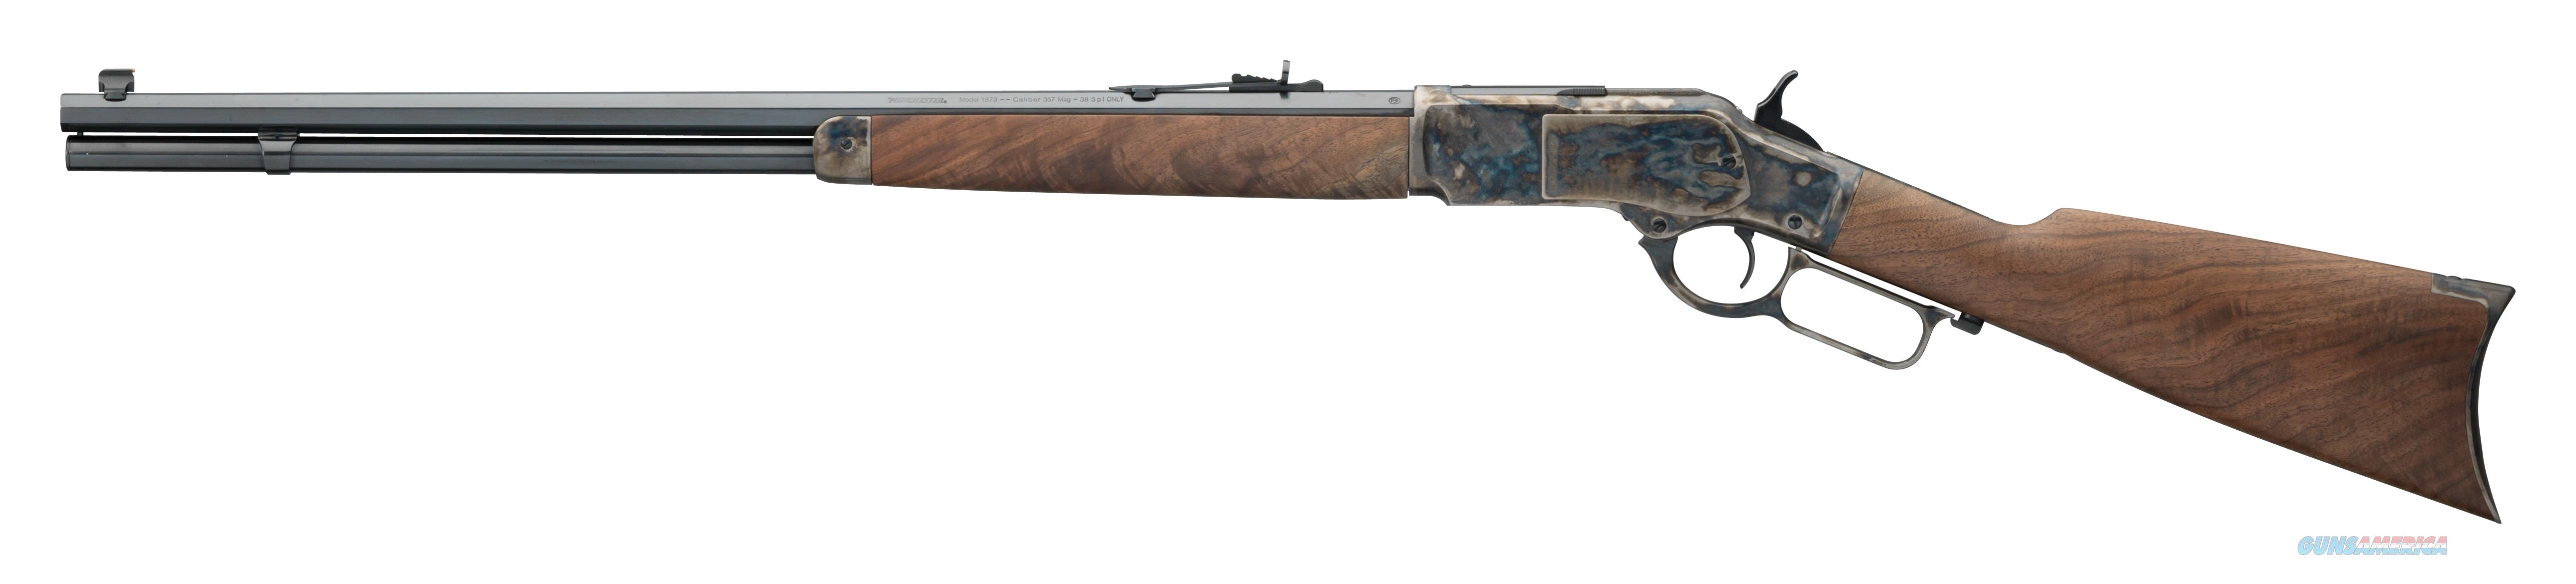 Winchester 1873 Sporter .44-40 Win CCH 534217140  Guns > Rifles > Winchester Rifles - Modern Lever > Other Lever > Post-64